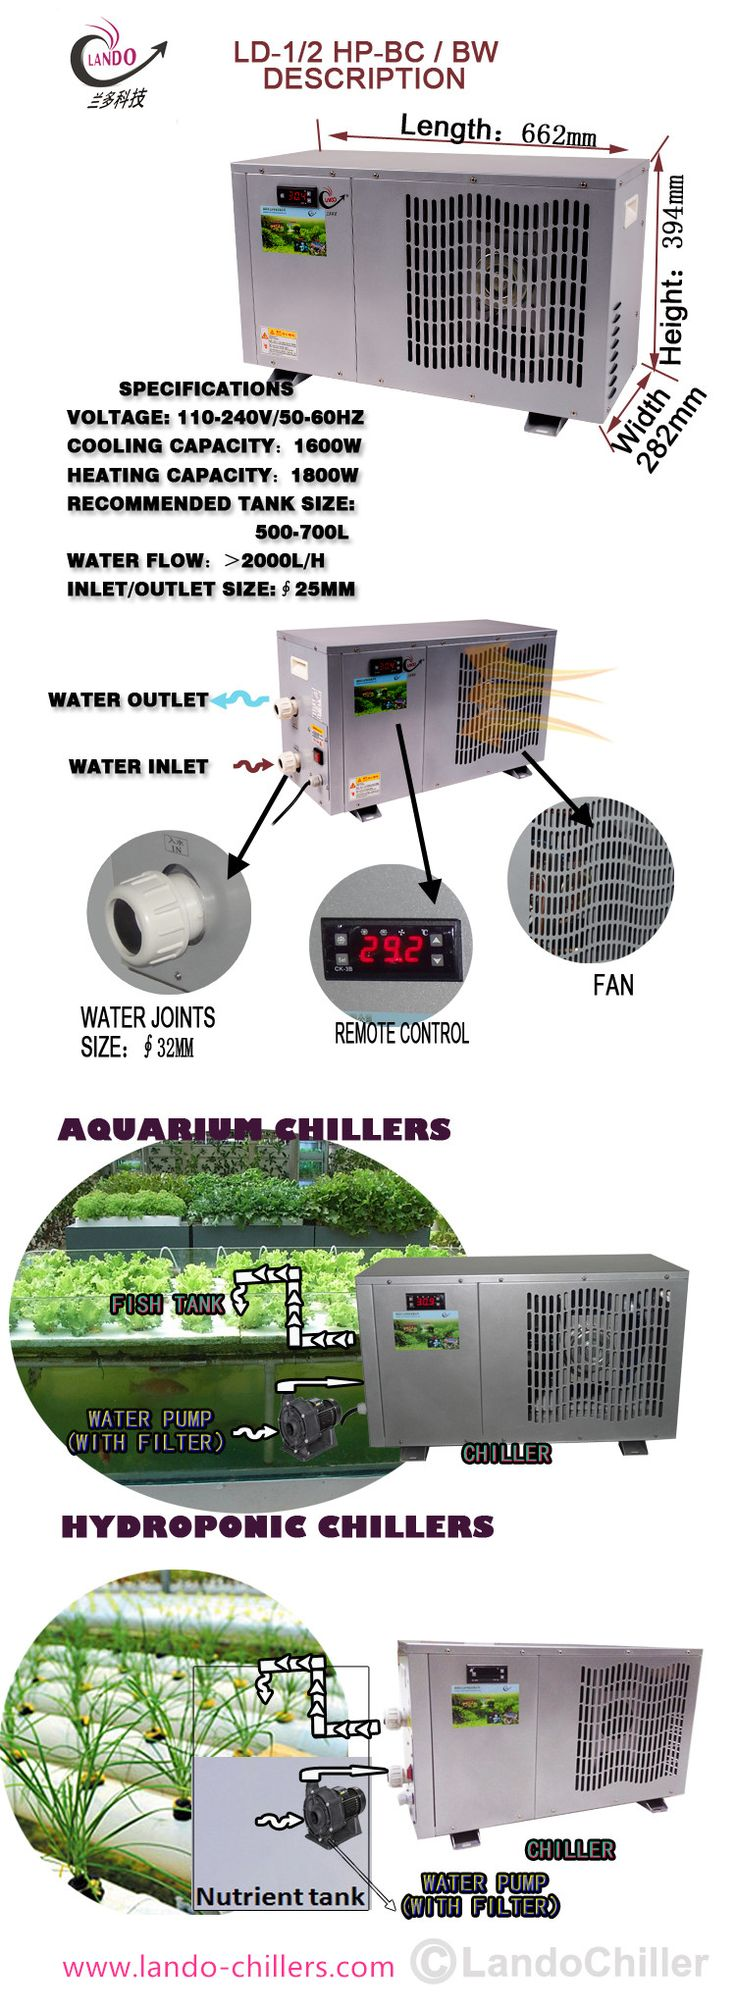 The Best Water Chillers For Aquariums . LANDO company supply Small Cheap Aquarium Water Chillers Cool Fish Tanks 1/13 HP to 5 HP . manufactures titanium chillers with water chillers systems are powerful cooling systems for both freshwater and saltwater aquariums.  #AquariumWaterChillers #Aquariumchillers #AquariumWasserkühler #水族館水チラー